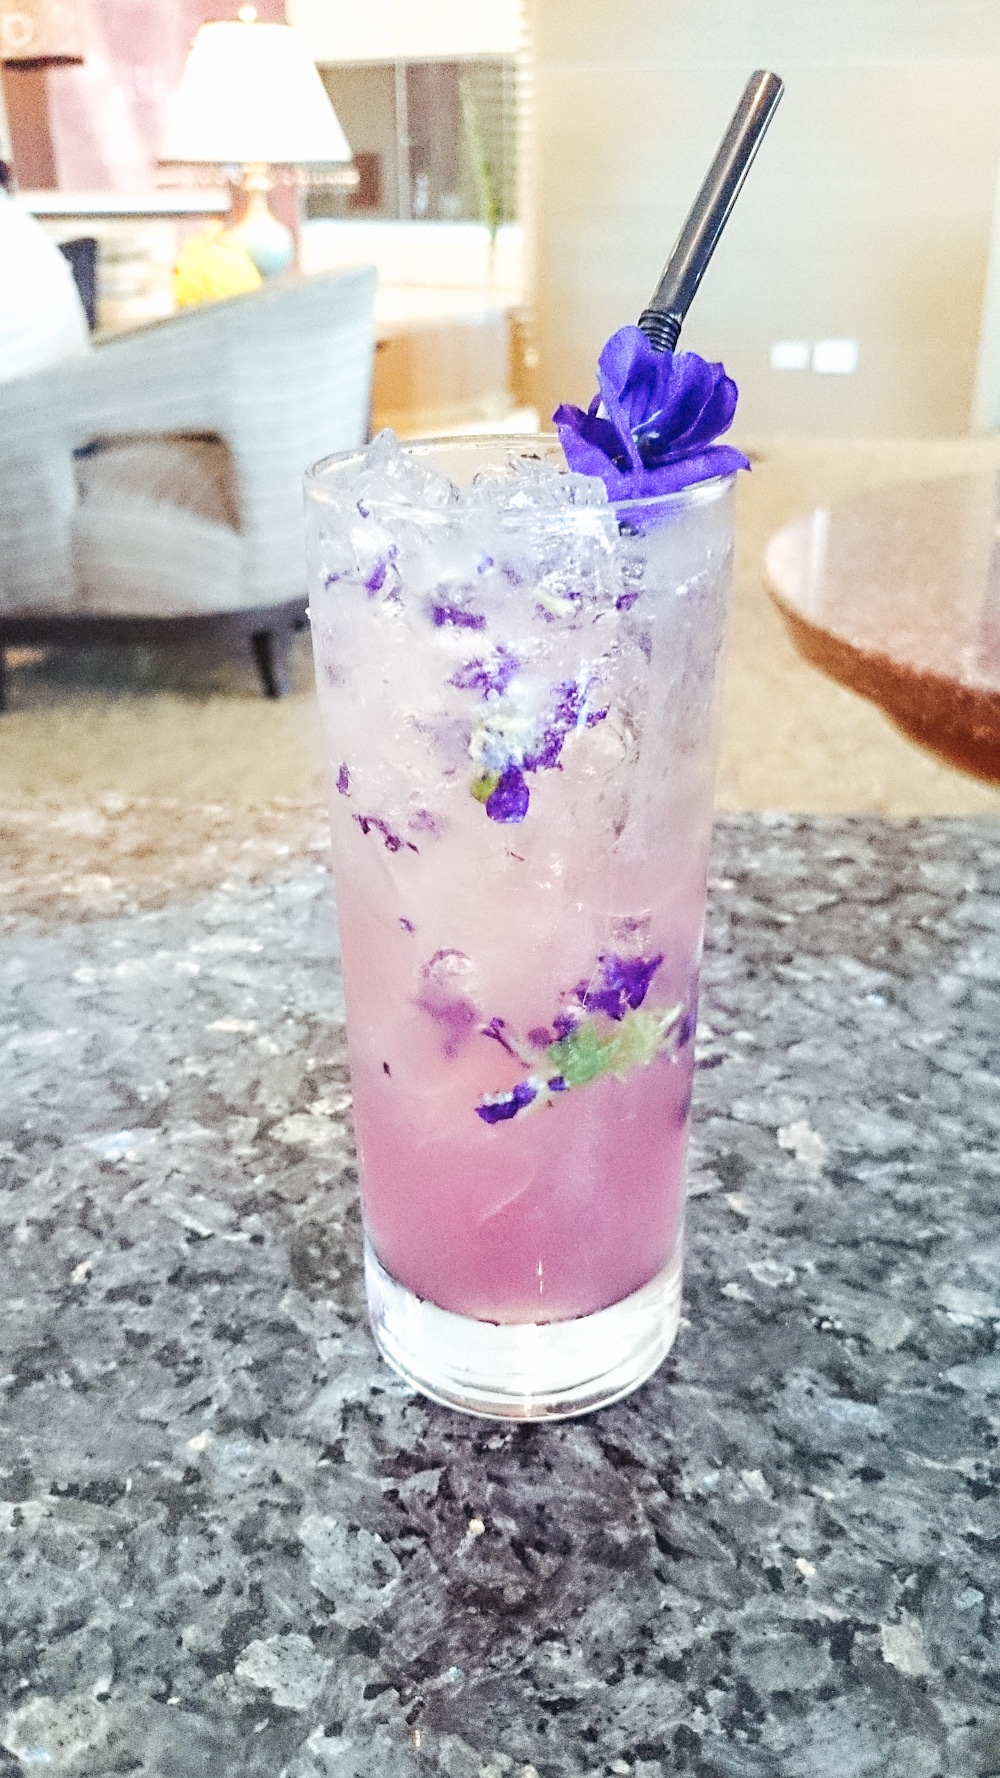 Discovery Primea welcome drink